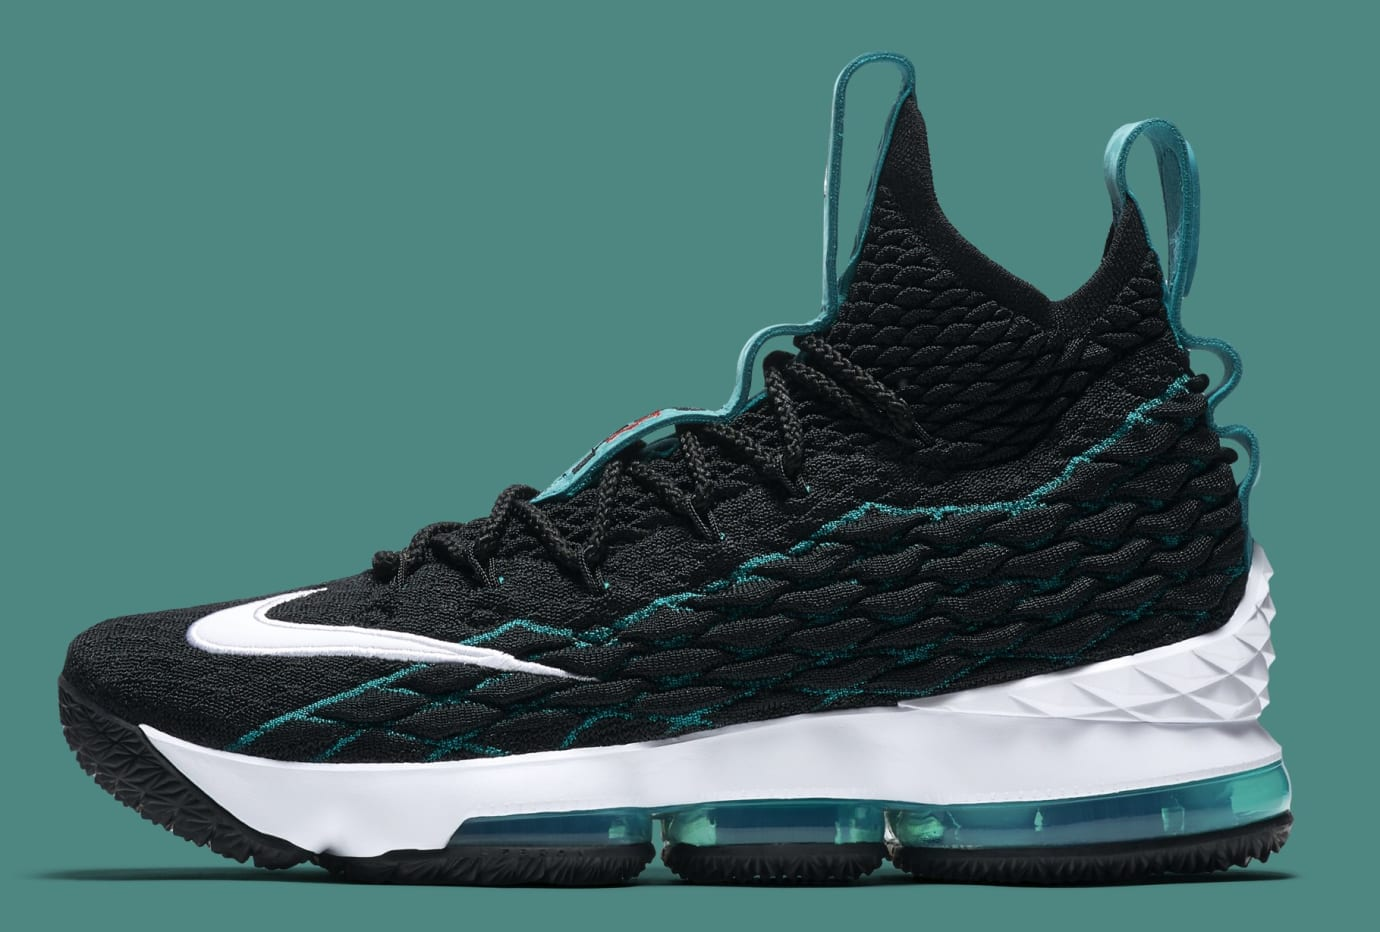 sale retailer be7f1 7f5f2 LeBron James Ken Griffey Jr LeBron 15 | Sole Collector